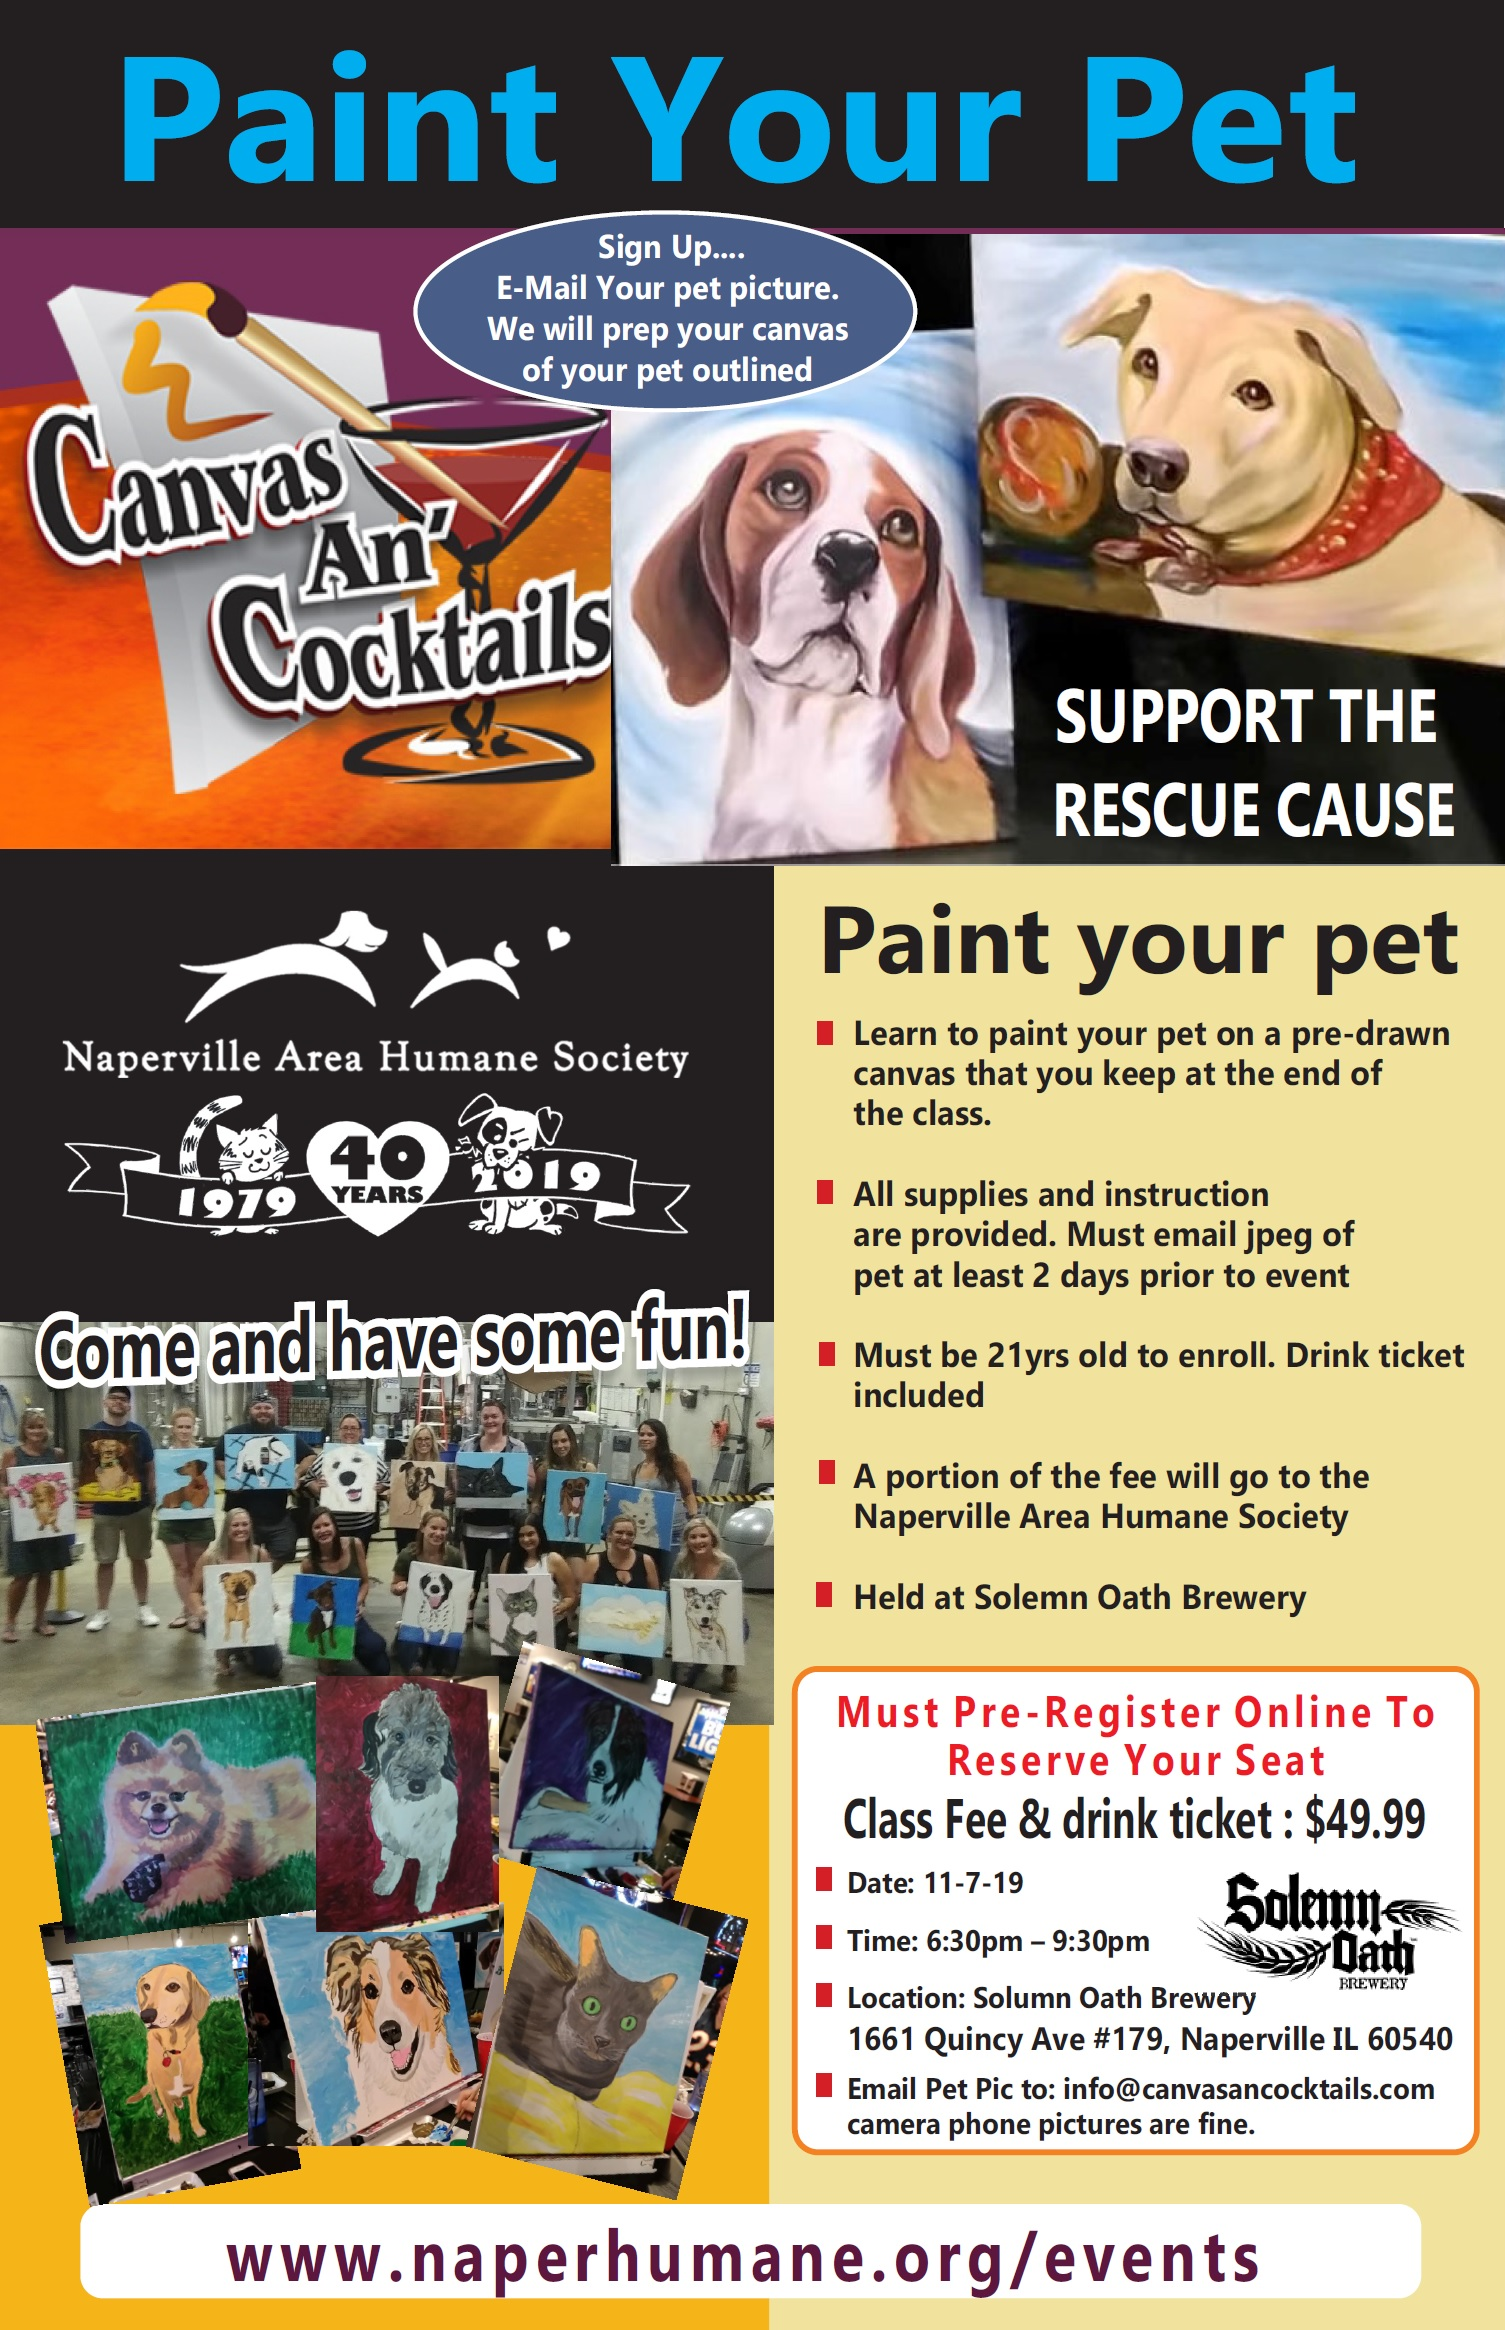 Paint Your Pet Event At Solemn Oath Naperville Area Humane Society